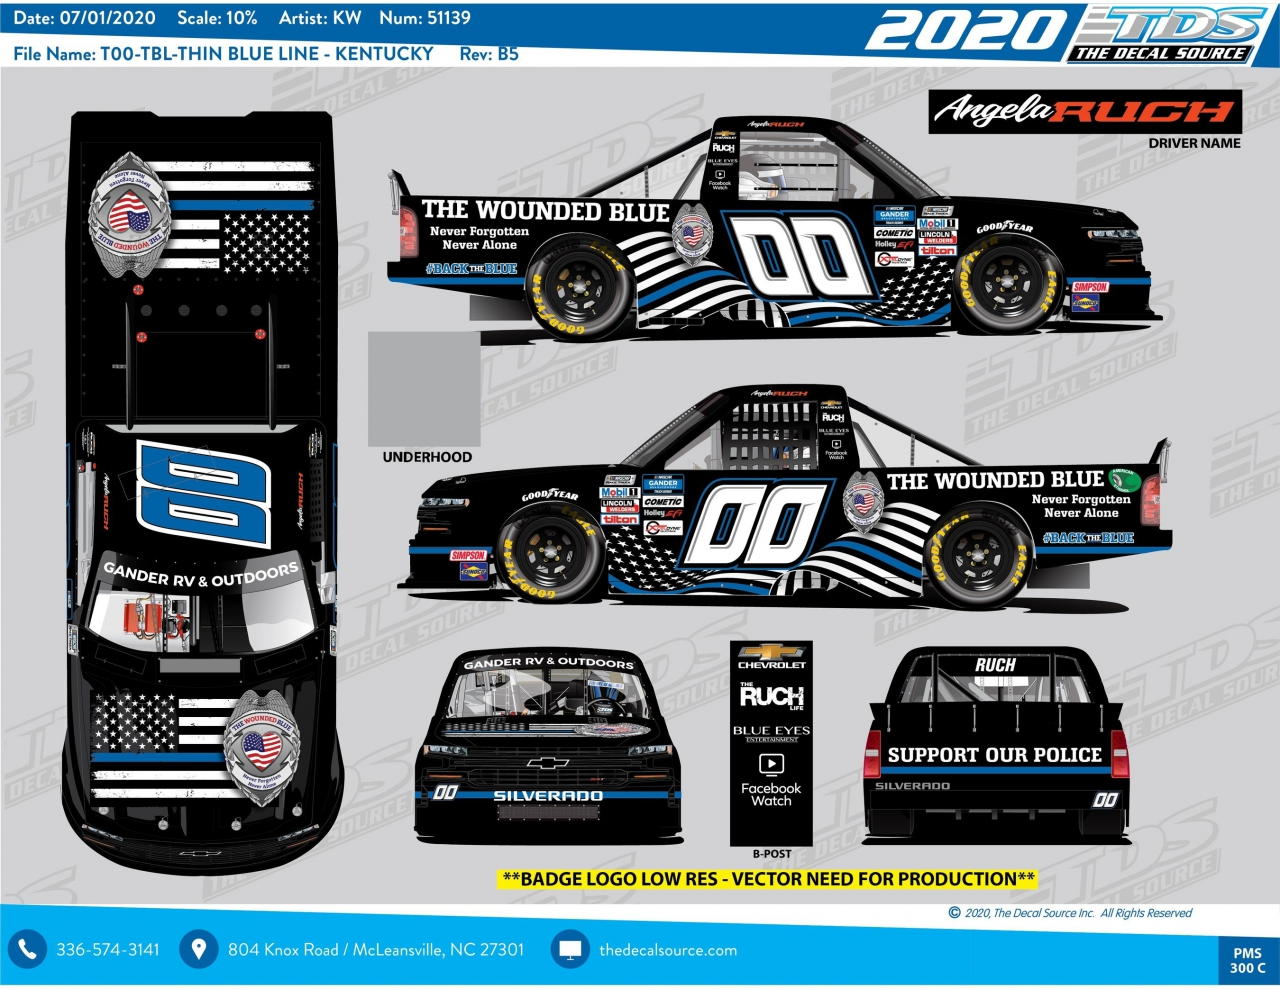 Angela Ruch - The Wounded Blue paint scheme - NASCAR Truck Series